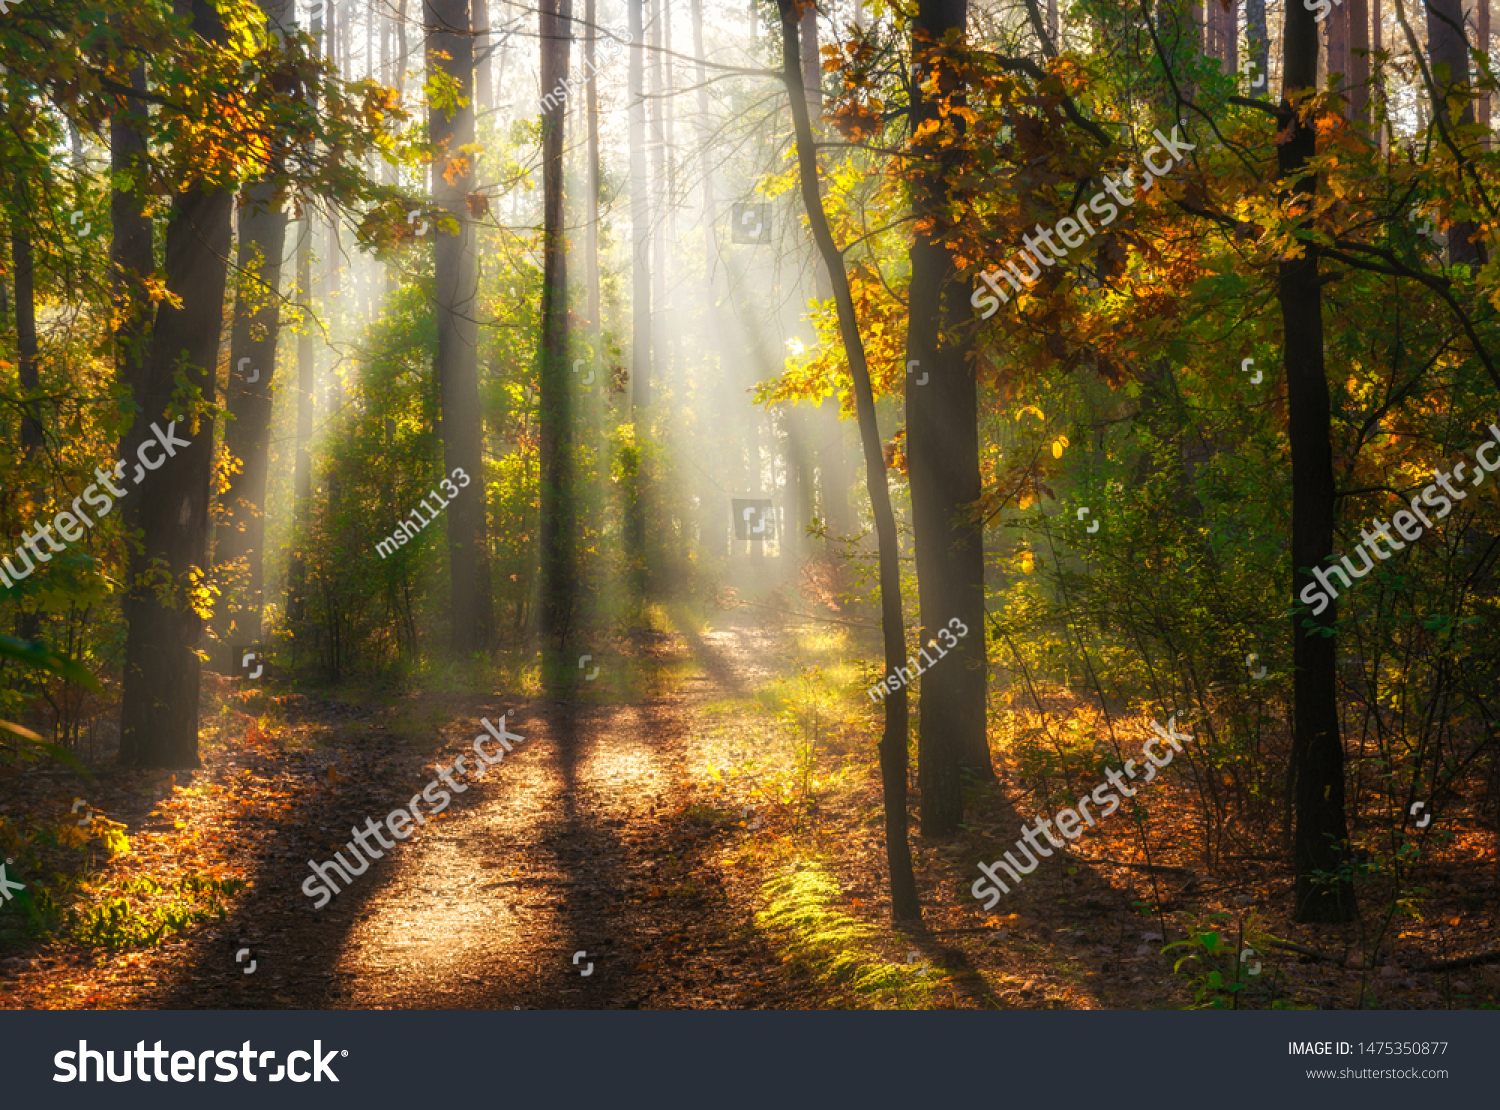 Walk in the woods. Pleasant autumn weather. Sun rays play in the branches of trees. #1475350877